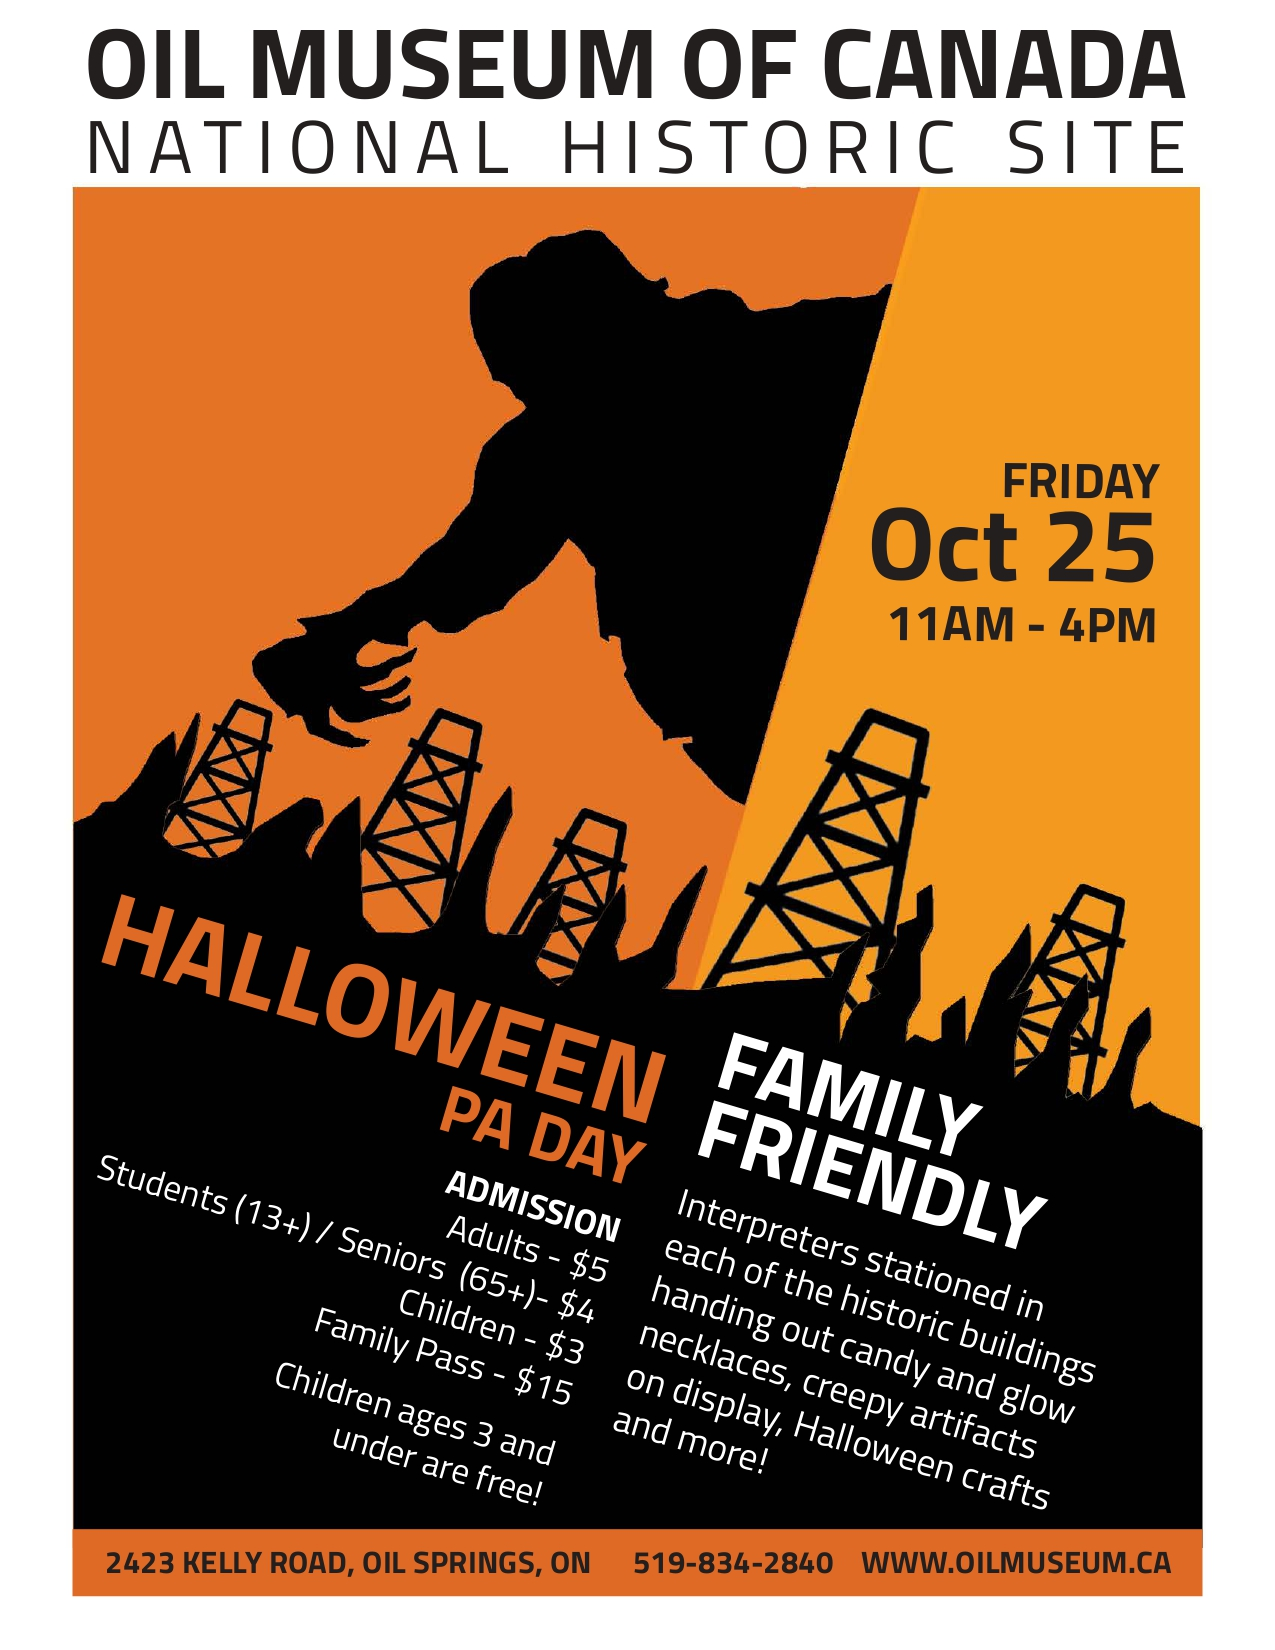 Halloween PA Day @ Oil Museum of Canada